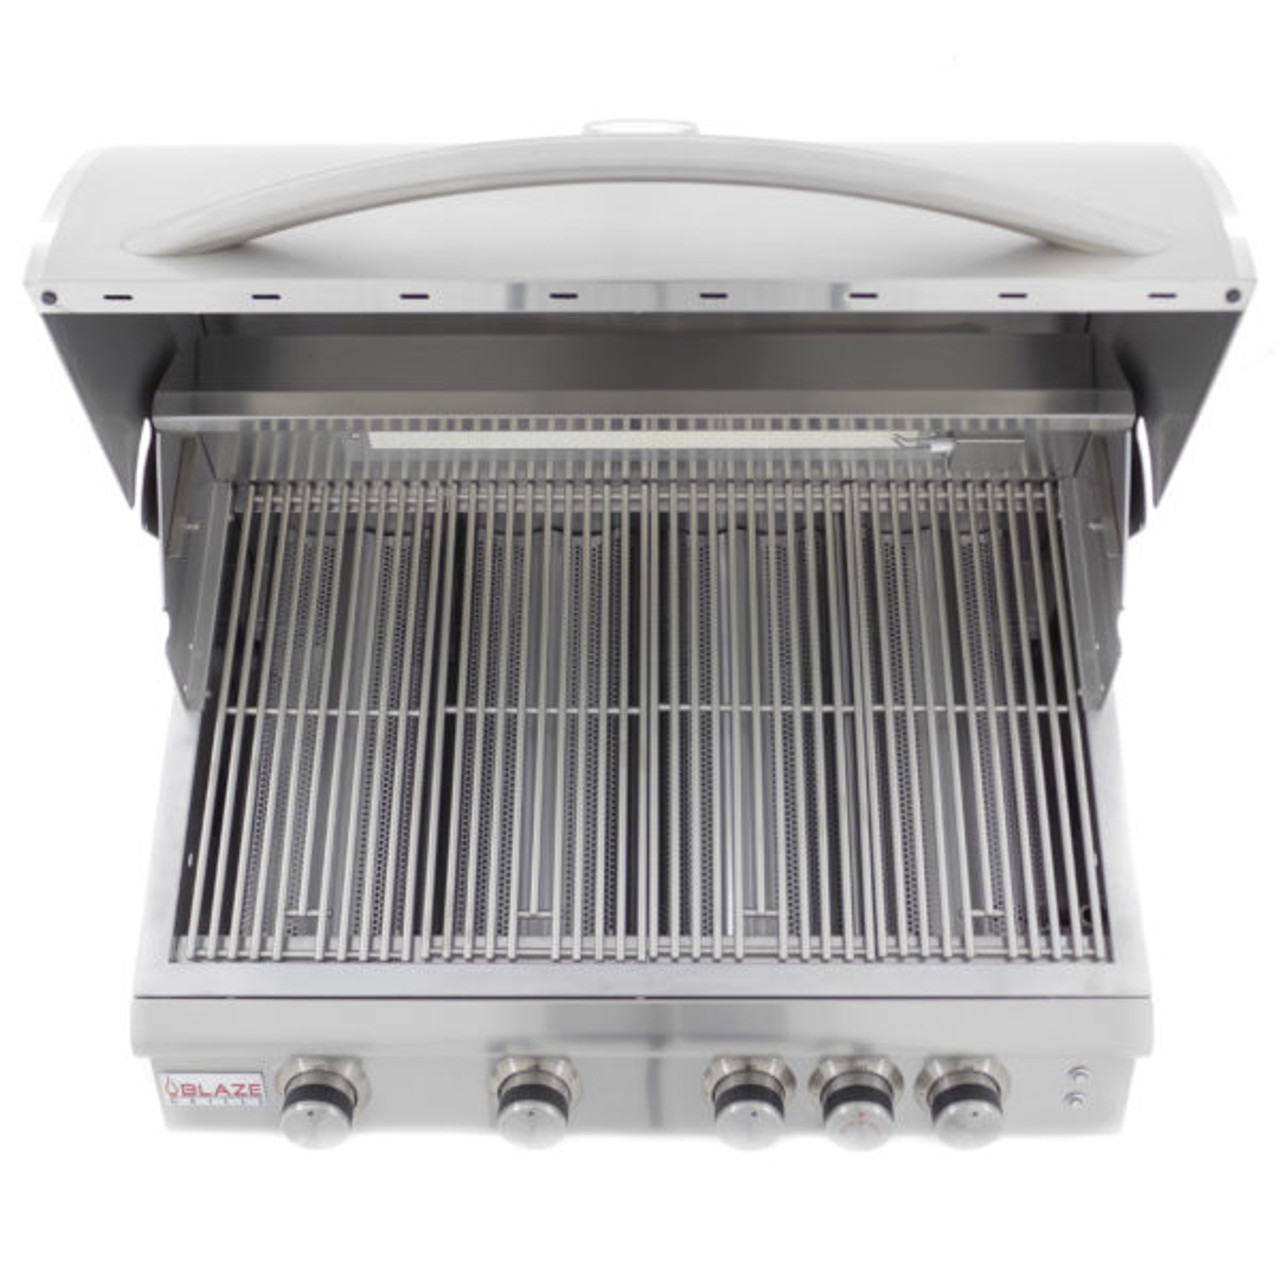 Blaze 4 Burner LTE Grill Built-In Grill with Lights